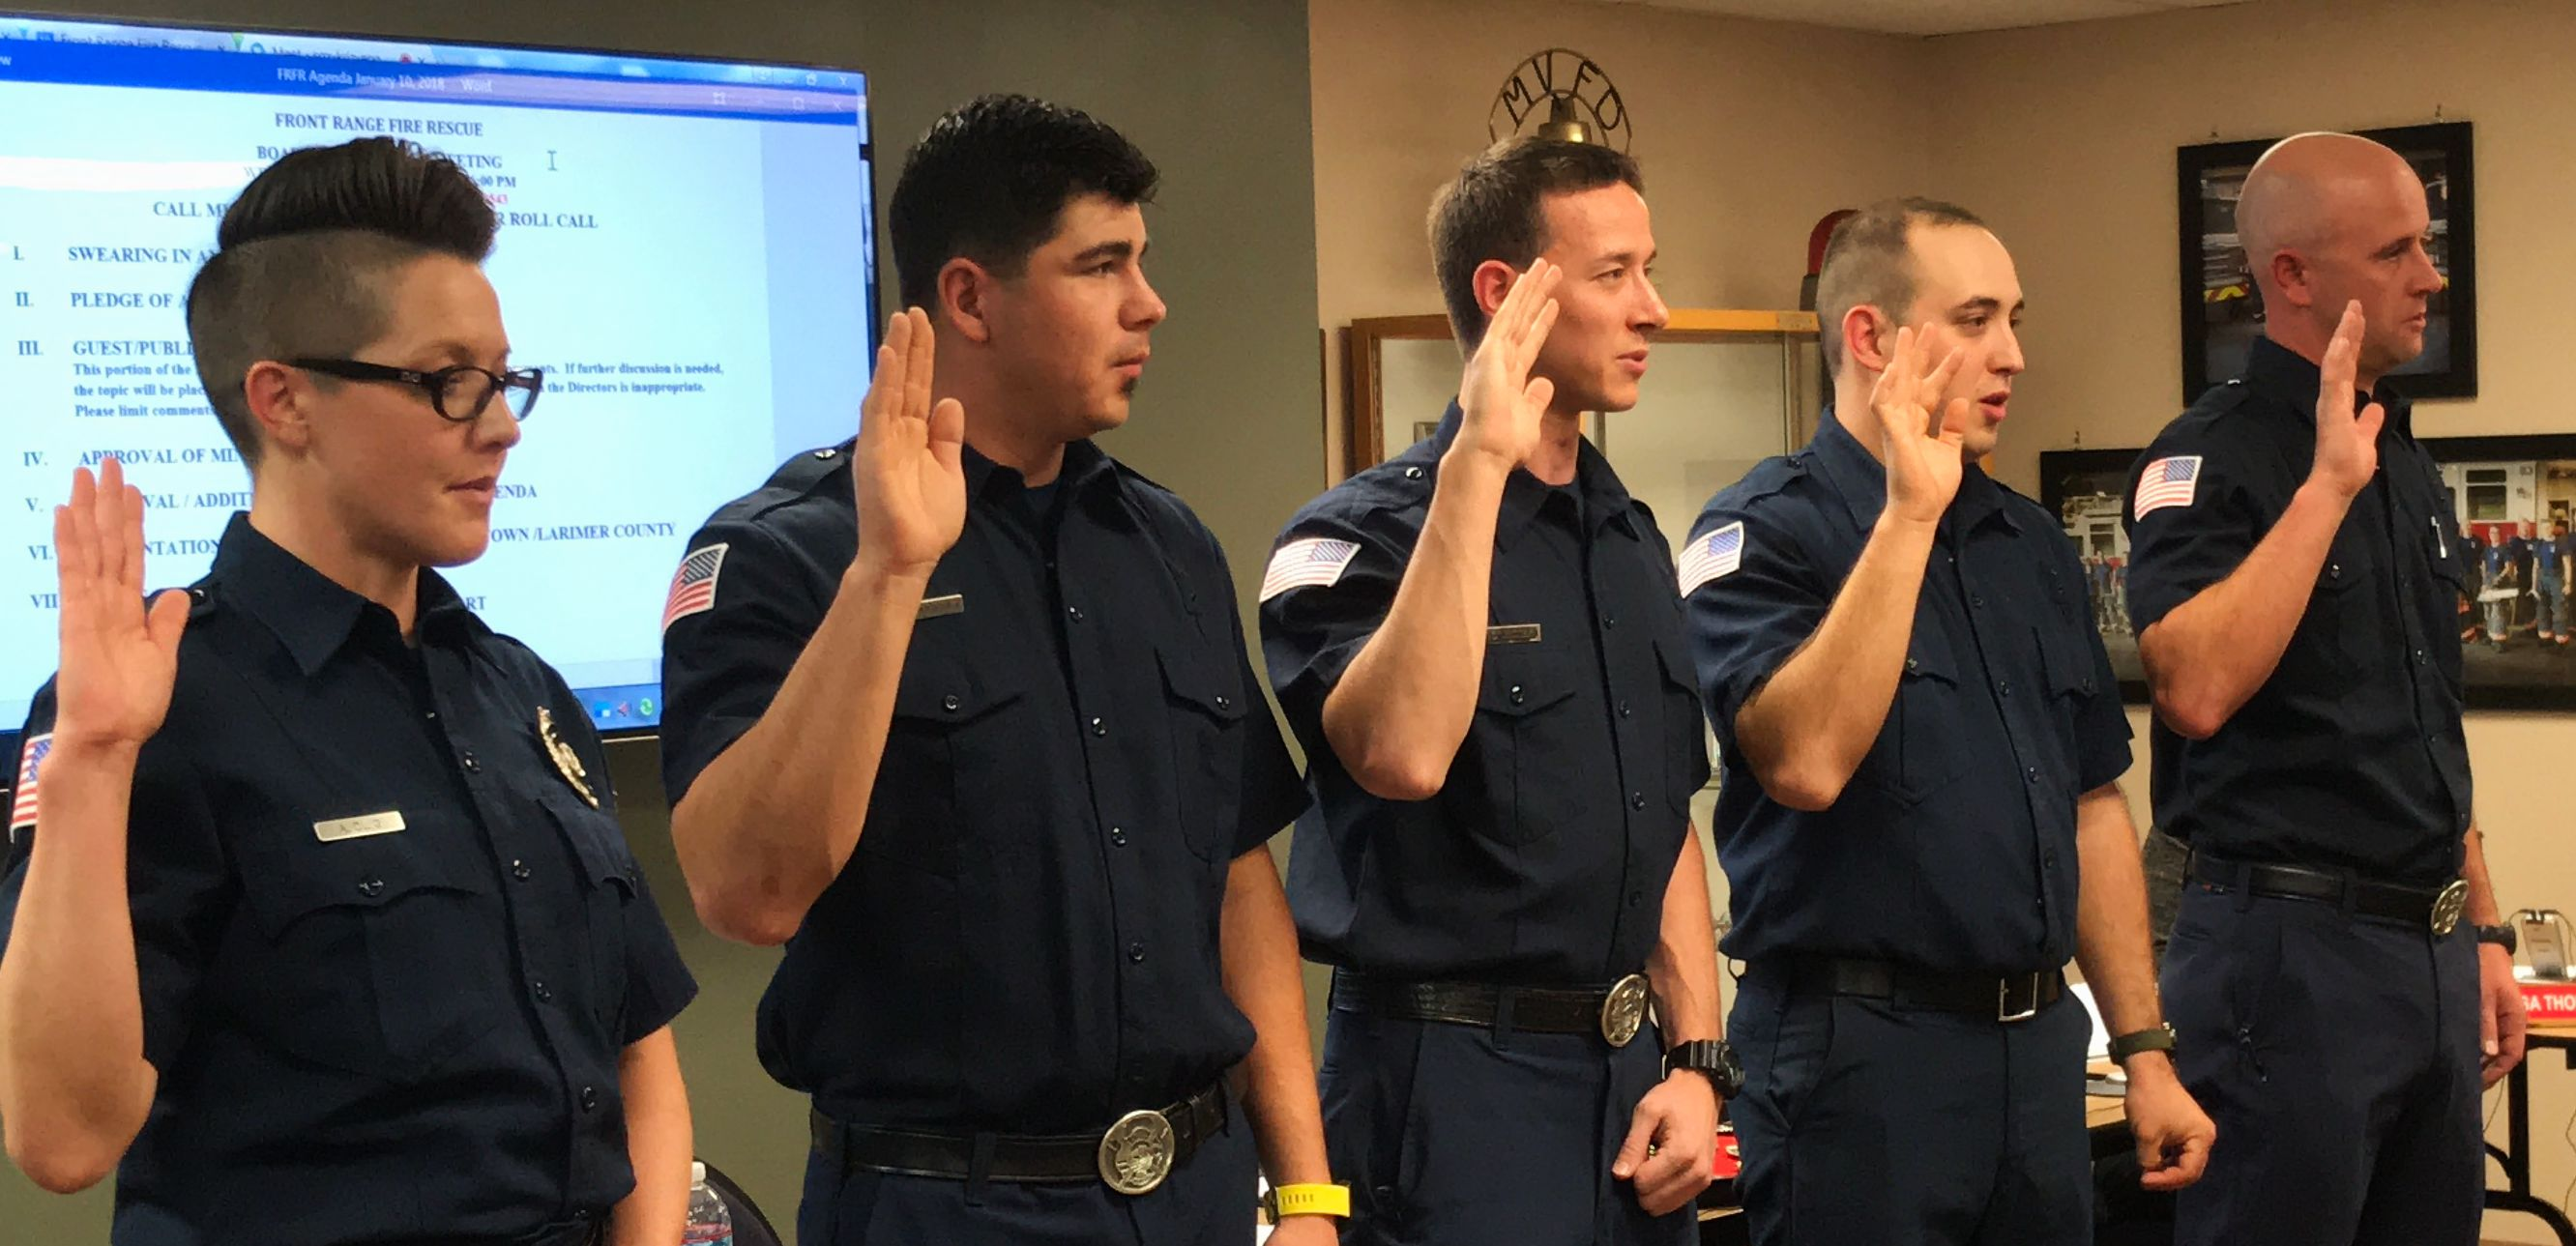 Congratulations to our 2018 Firefighters